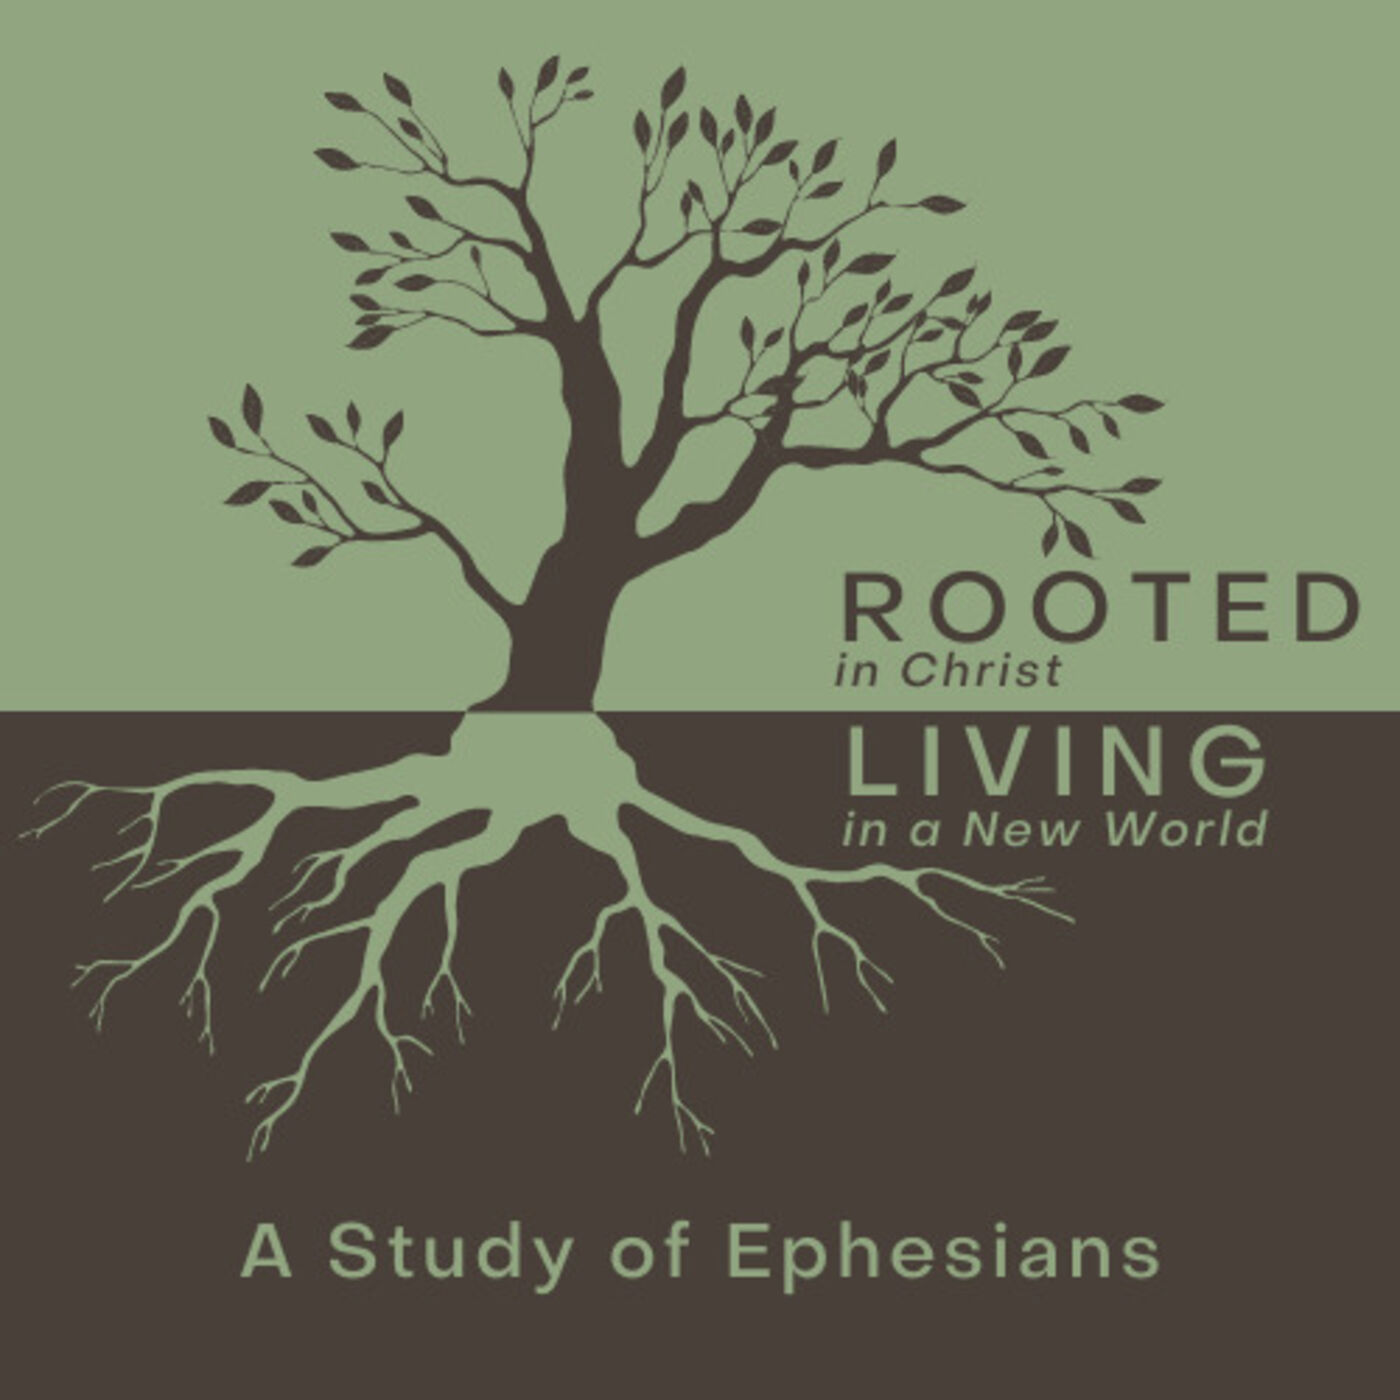 Rooted in Christ, Living in a New World - God's Glory